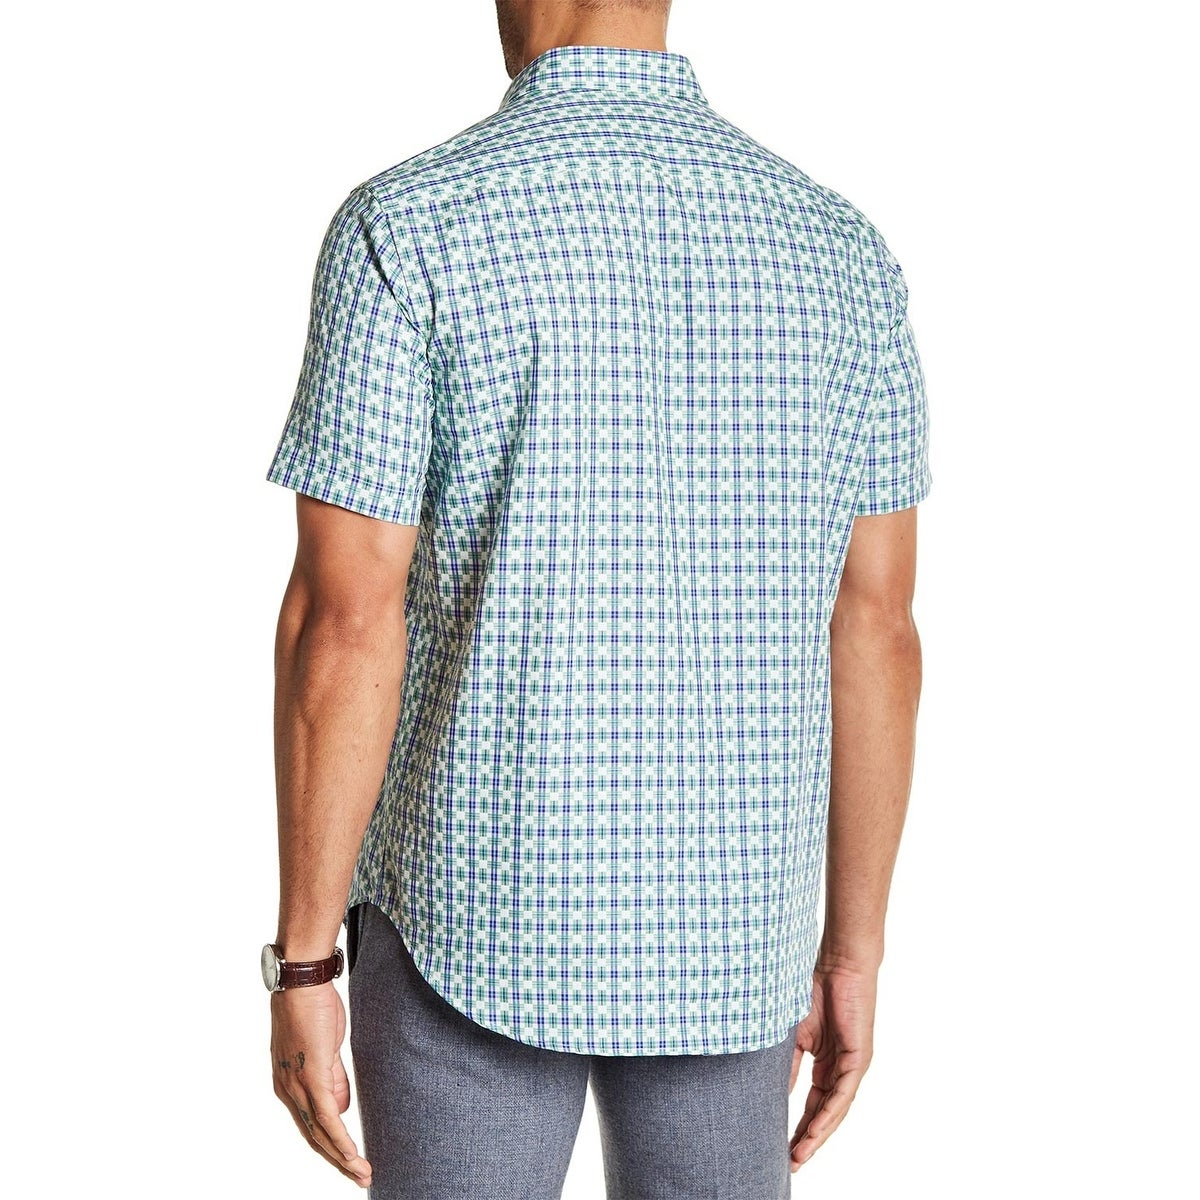 ae65cc12 Shop Robert Graham Bickford Road Woven Plaid Classic Fit Short Sleeve Shirt  Large - Free Shipping Today - Overstock - 25074867